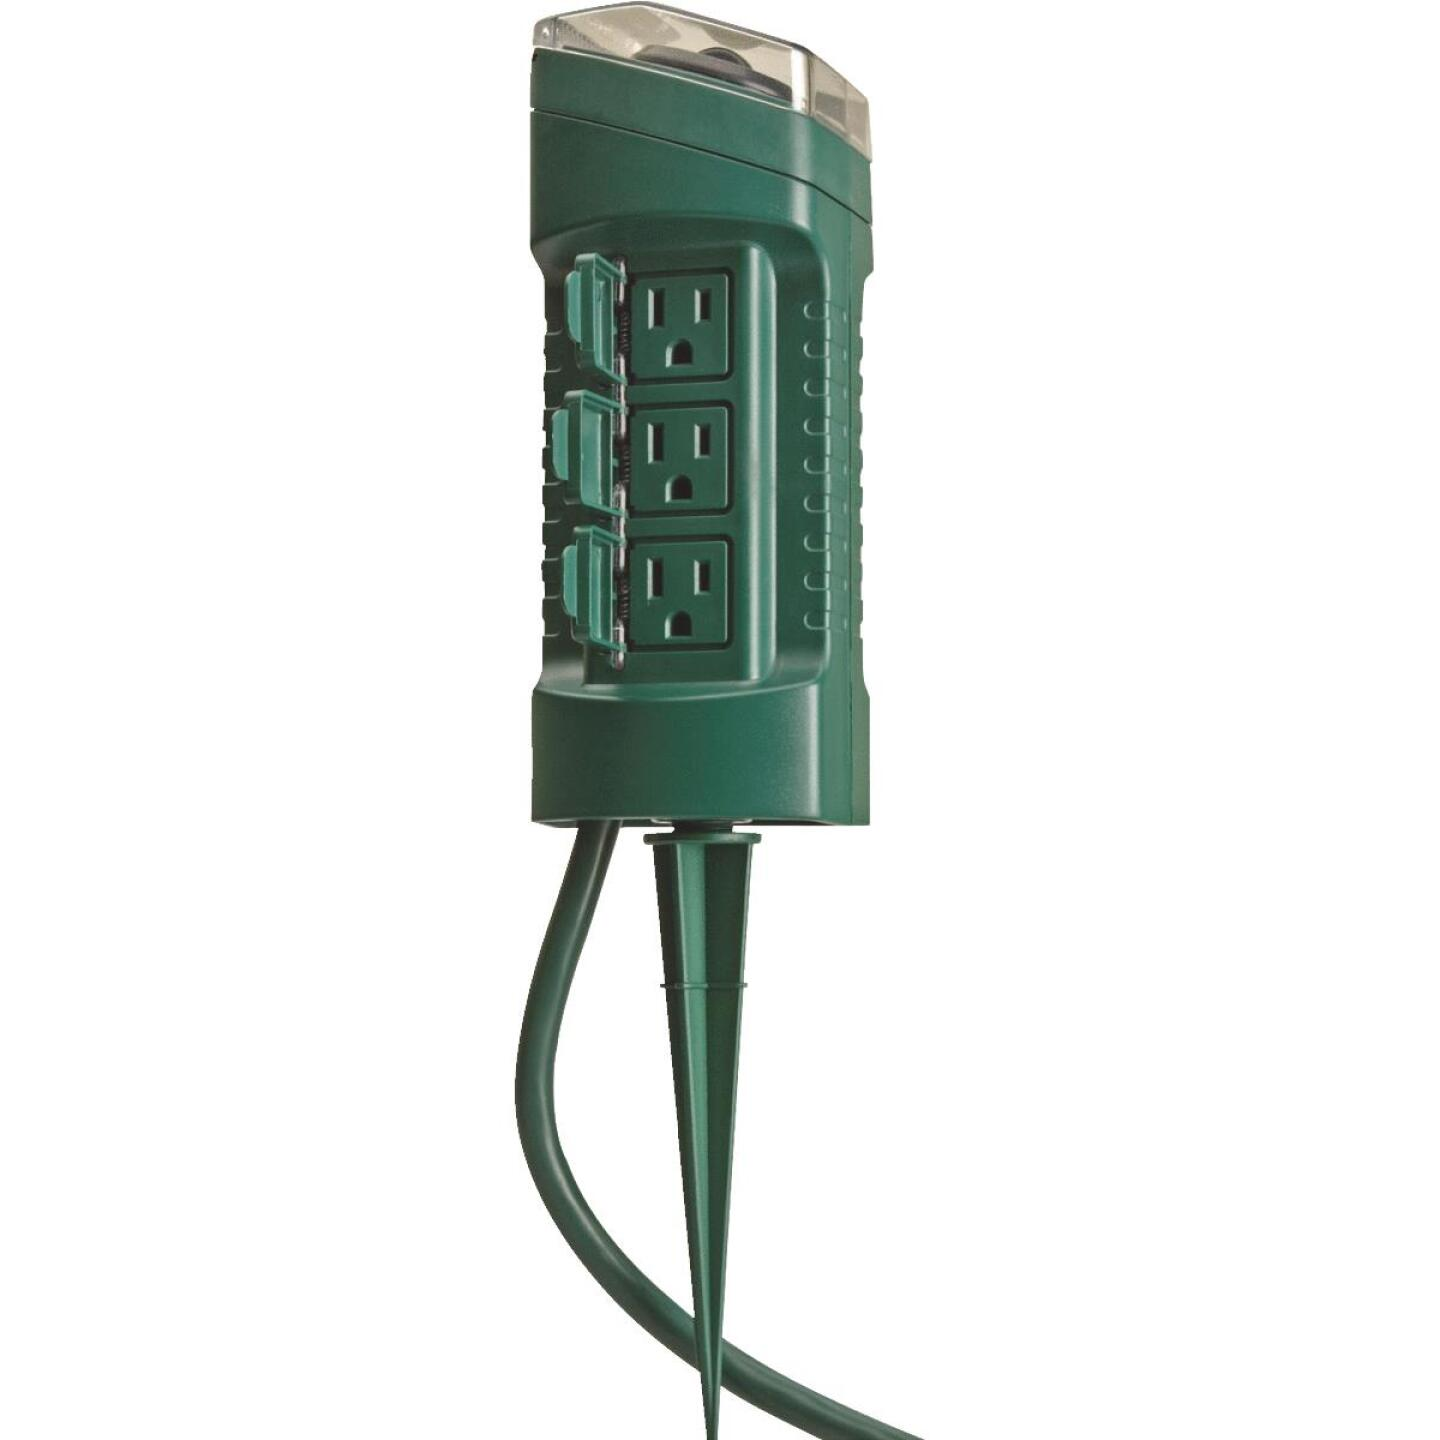 Woods 15A 125V 1875W Green Outdoor Timer Power Stake Image 1